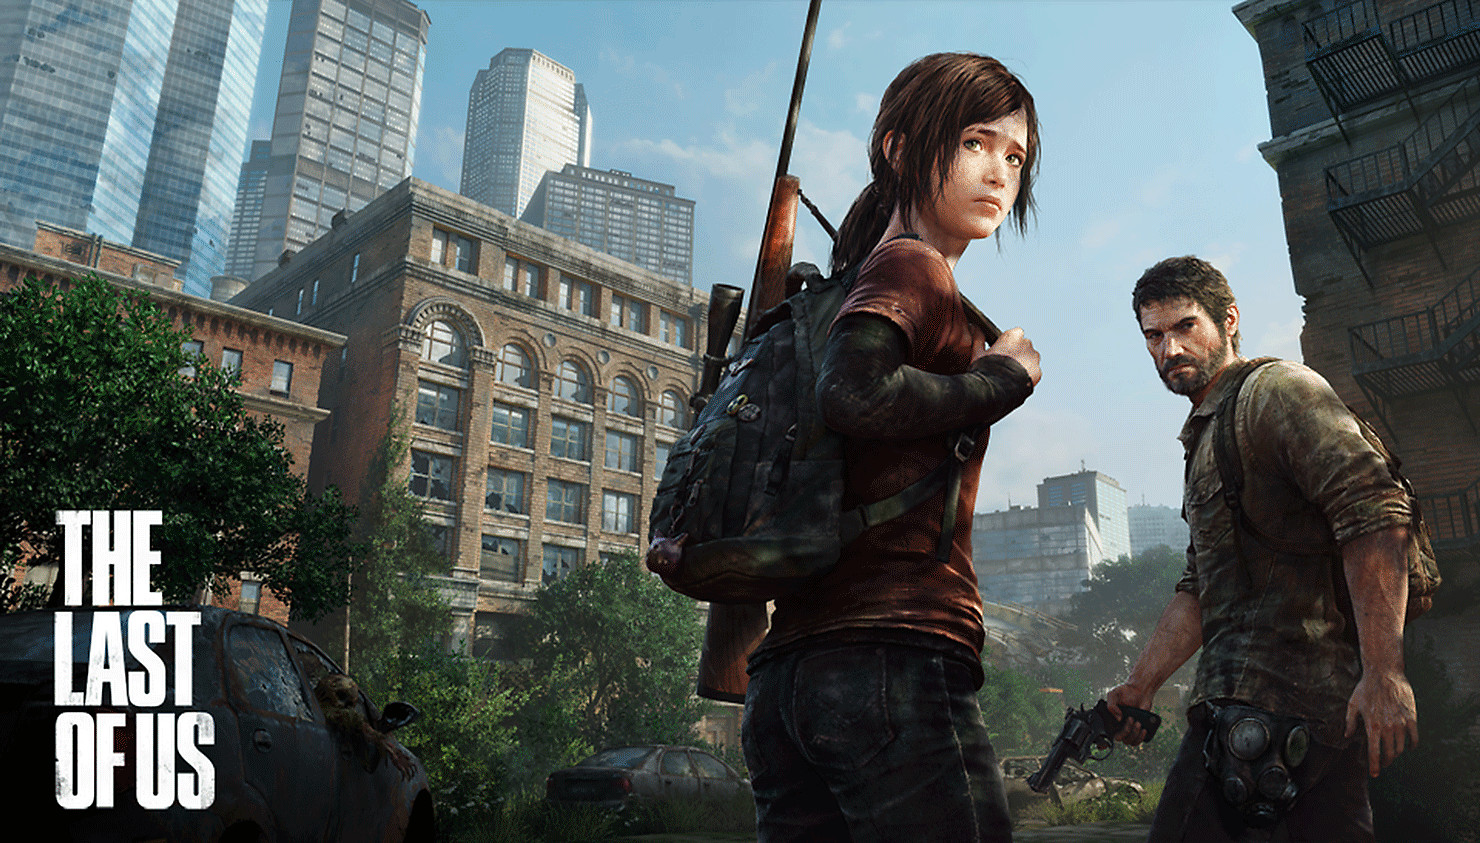 An Update on Uncharted and The Last of Us Multiplayer on PS3